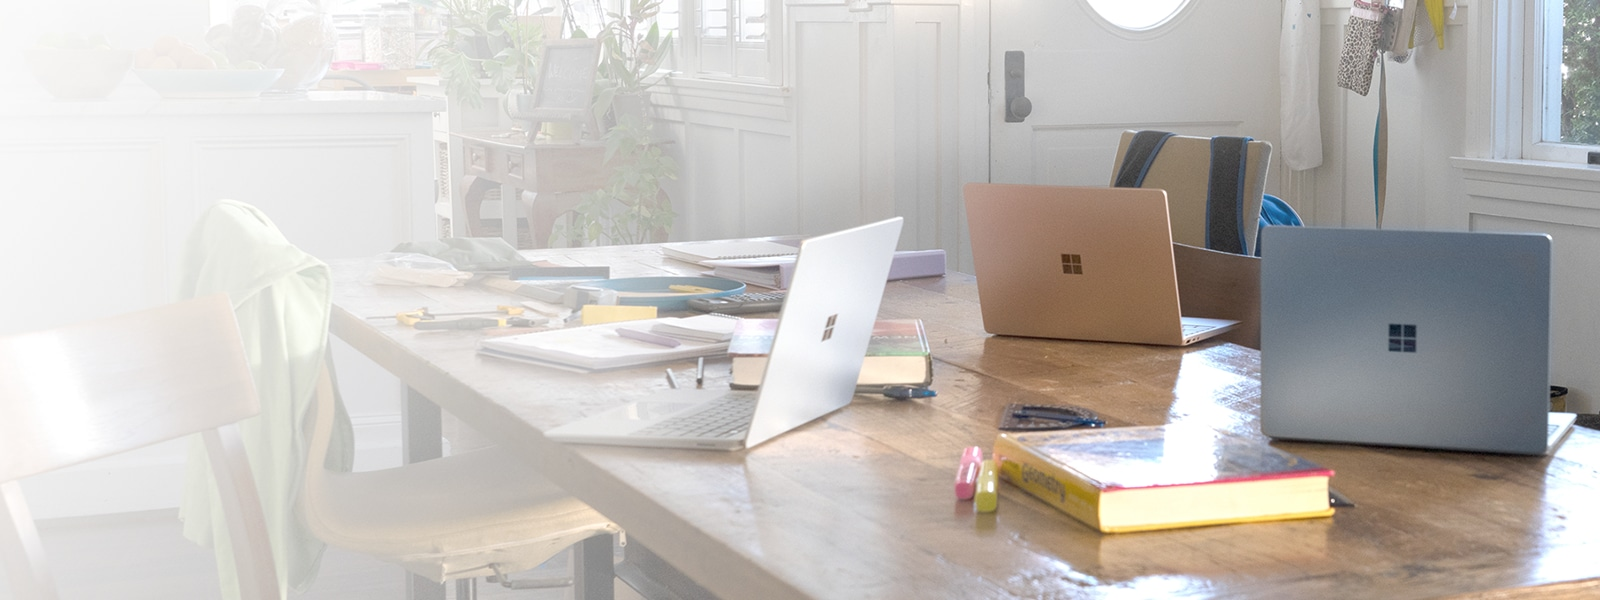 Three Surface Laptop Go sitting on a kitchen table cluttered with textbooks and school supplies